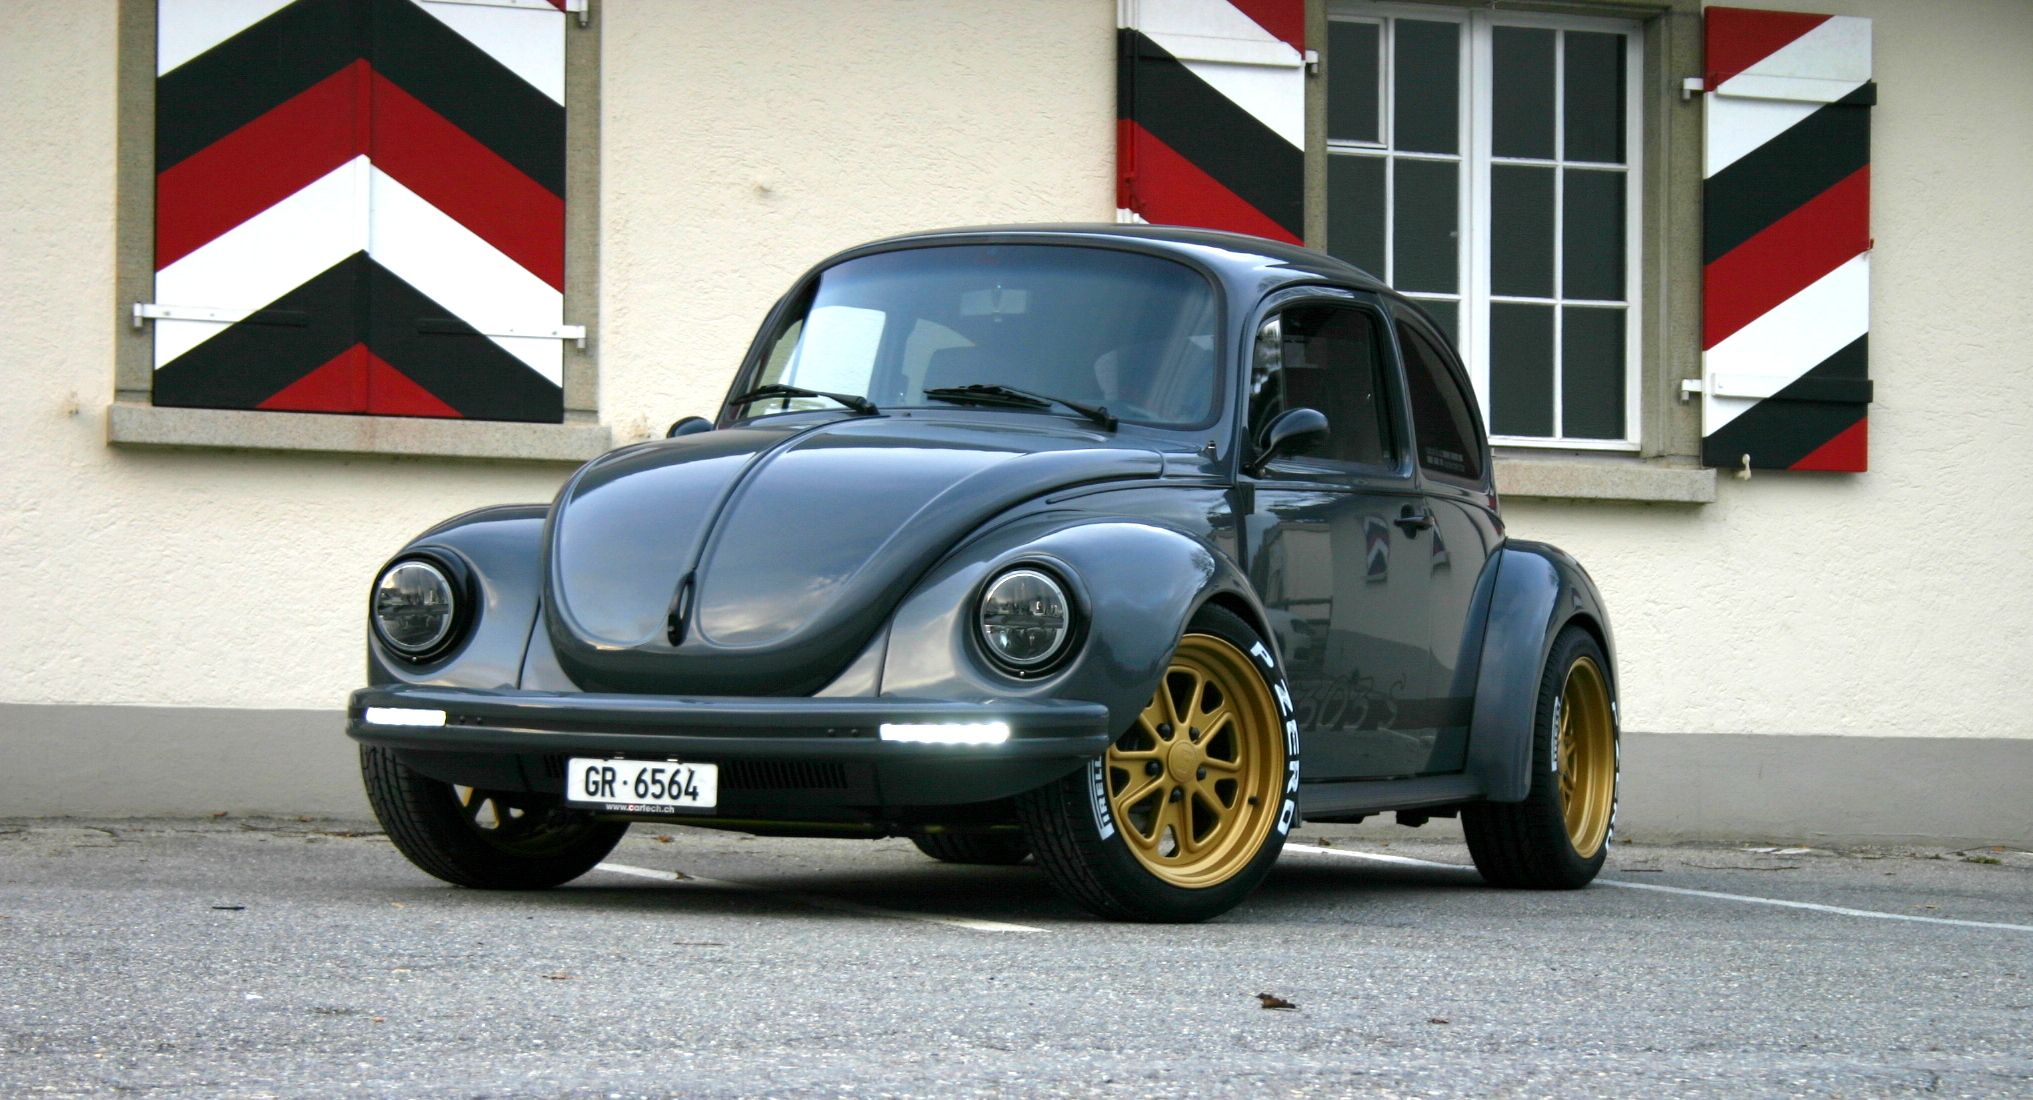 Pin De Gerald Smith En Vw Coches Y Motocicletas Vocho Y